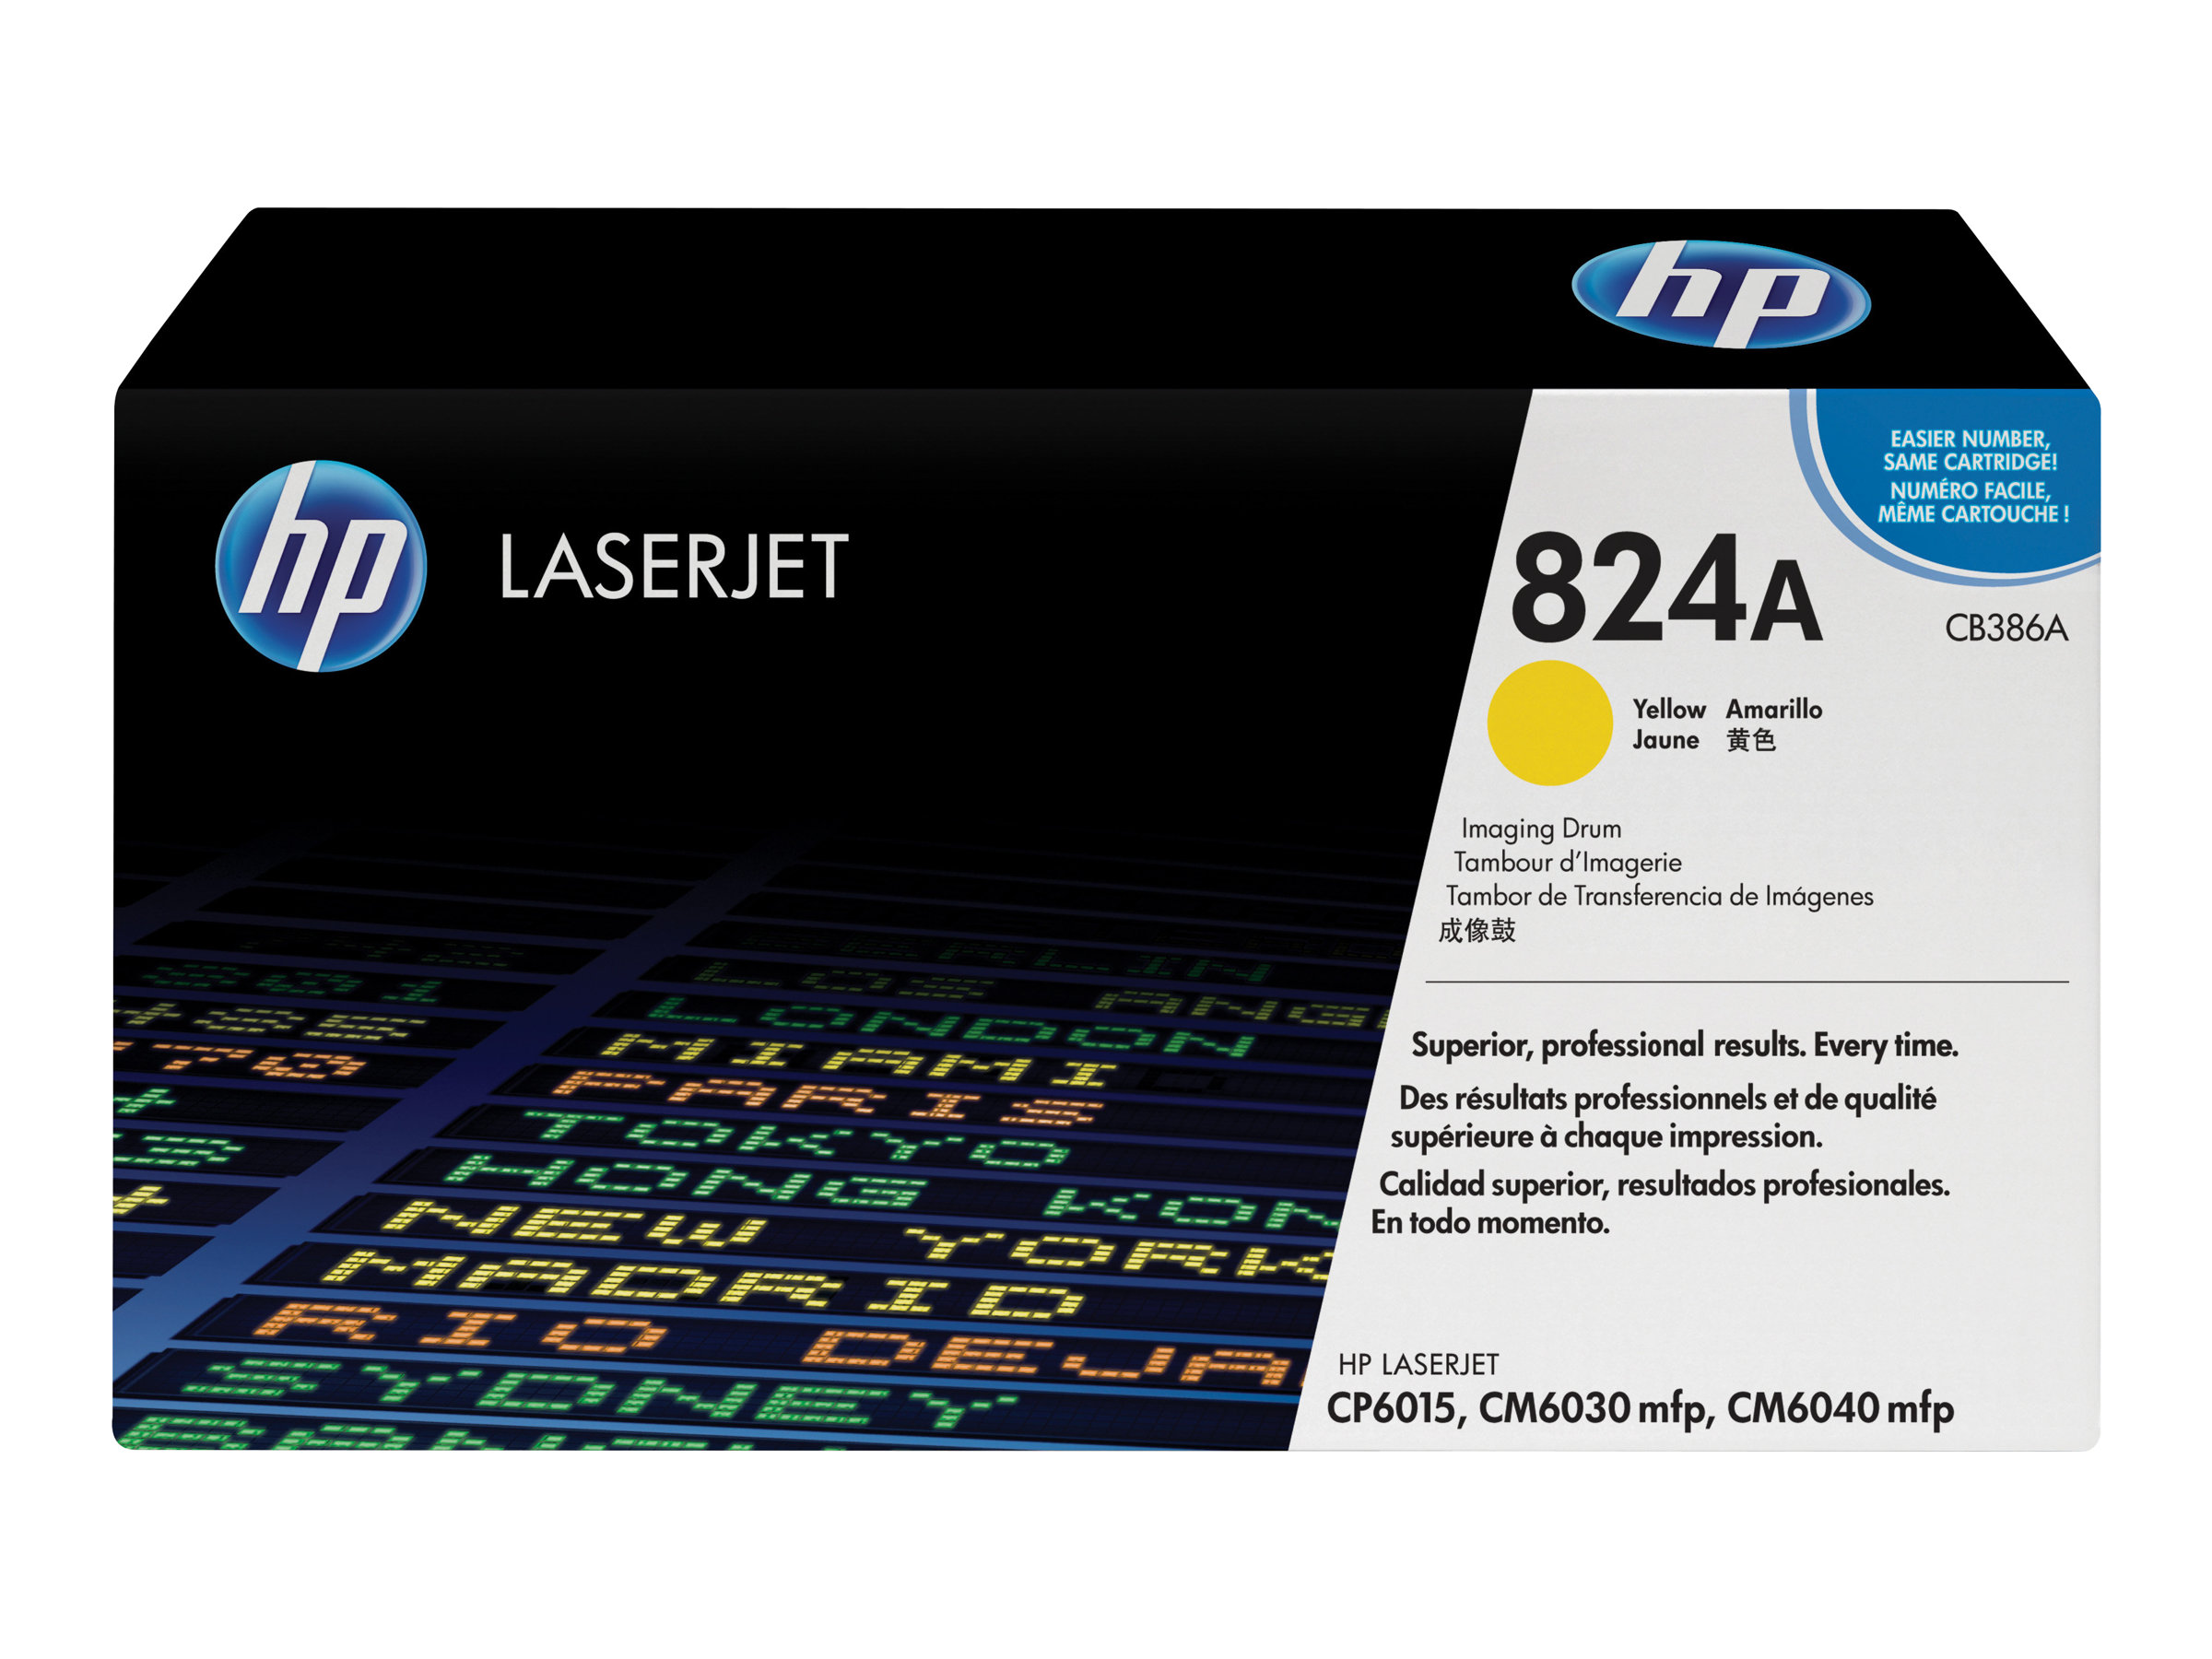 HP 824A - 1 - Gelb - Trommel-Kit - für Color LaserJet CL2000, CM6030, CM6040, CP6015